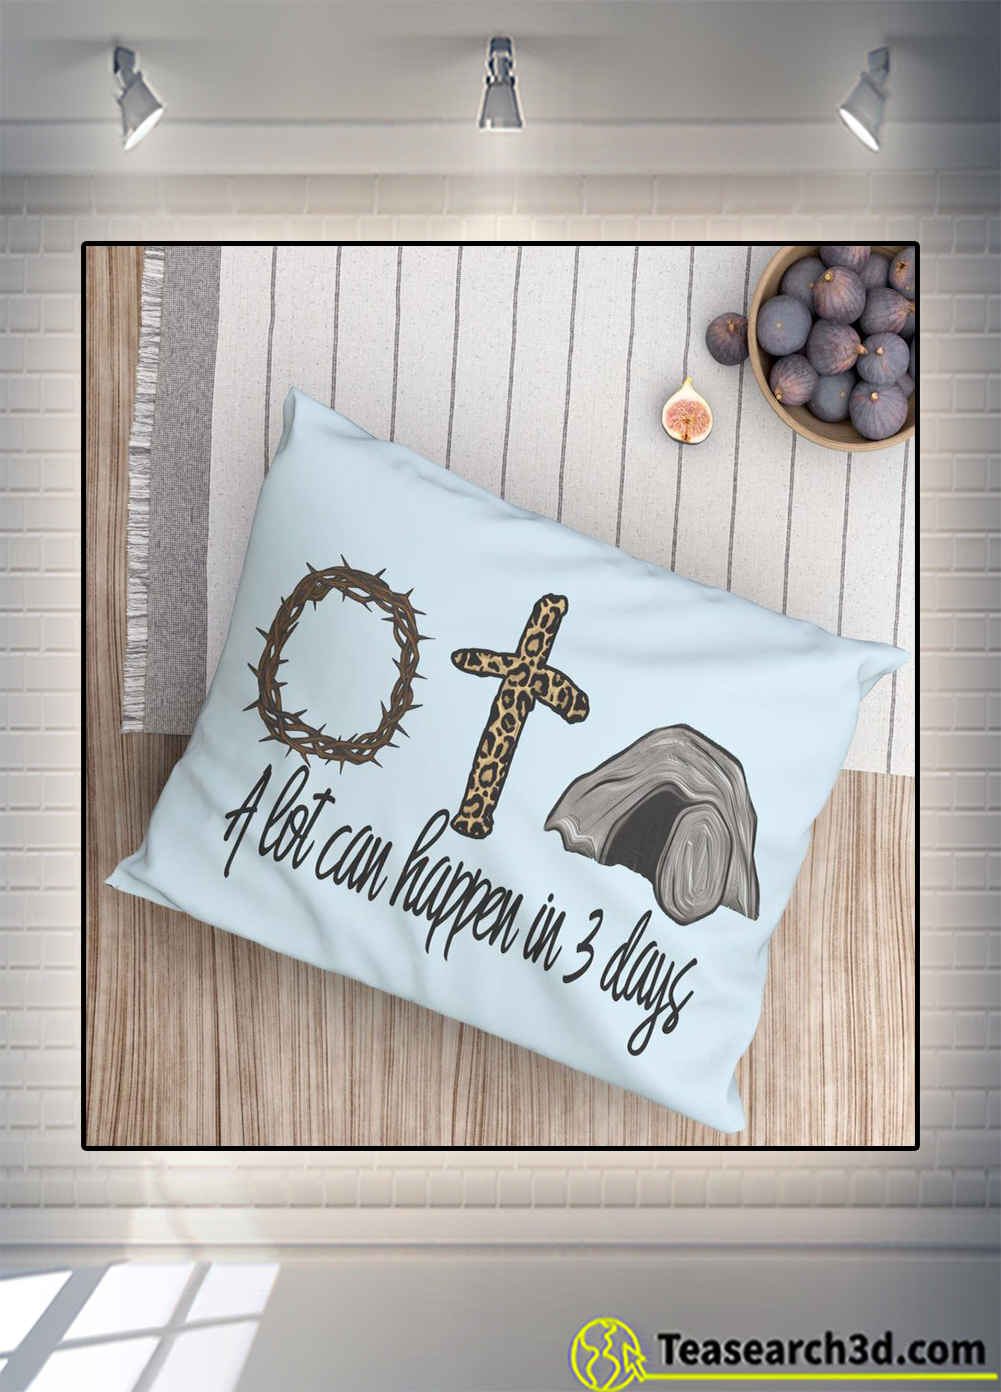 A lot can happen in 3 days jesus easter pillow